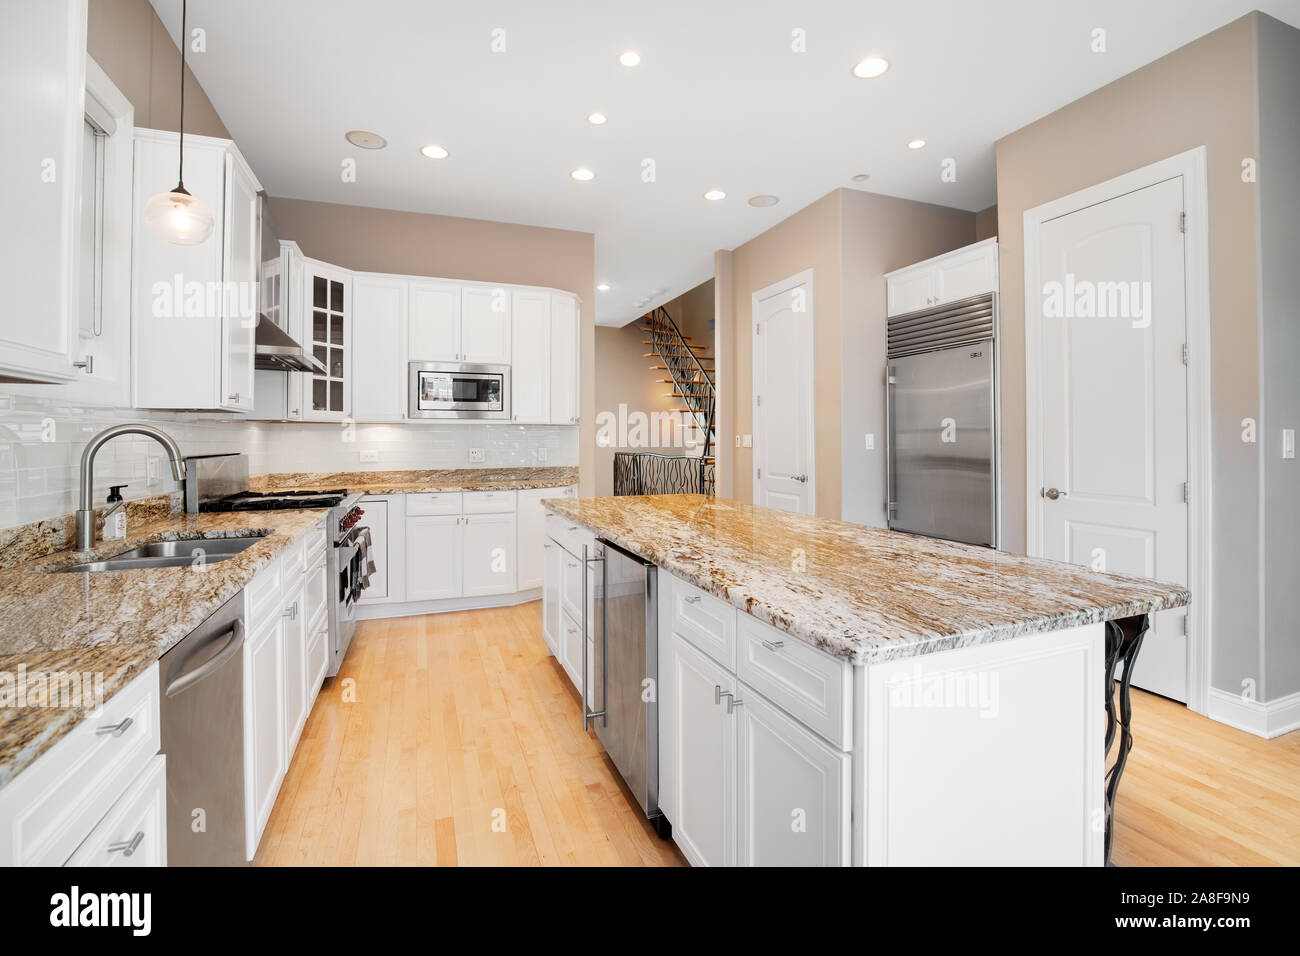 A large white kitchen in a luxurious home with wood floors ...